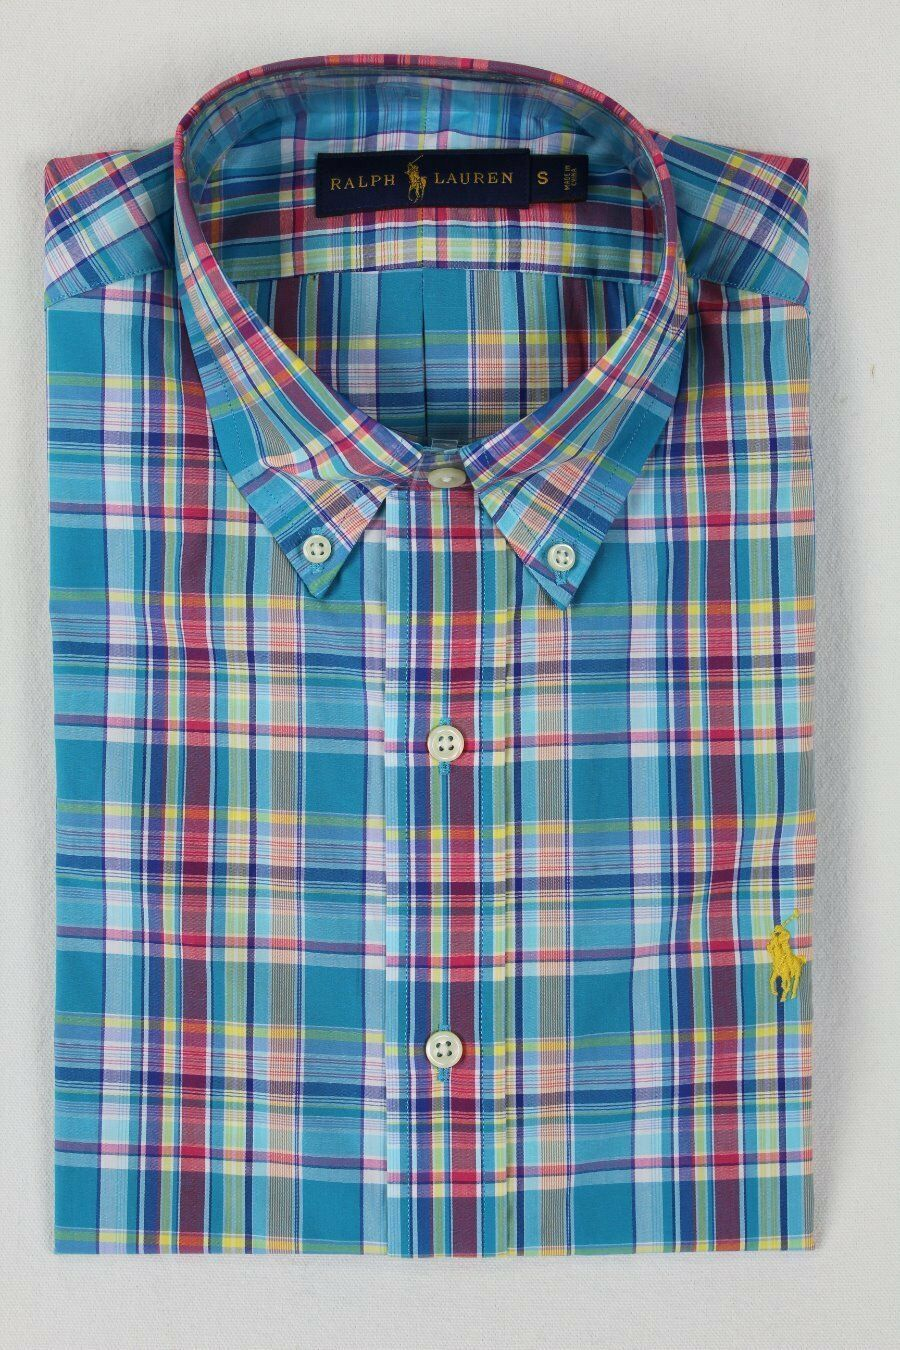 Ralph Lauren Turquoise Pink Plaid Button Down Classic Fit Dress Shirt NWT